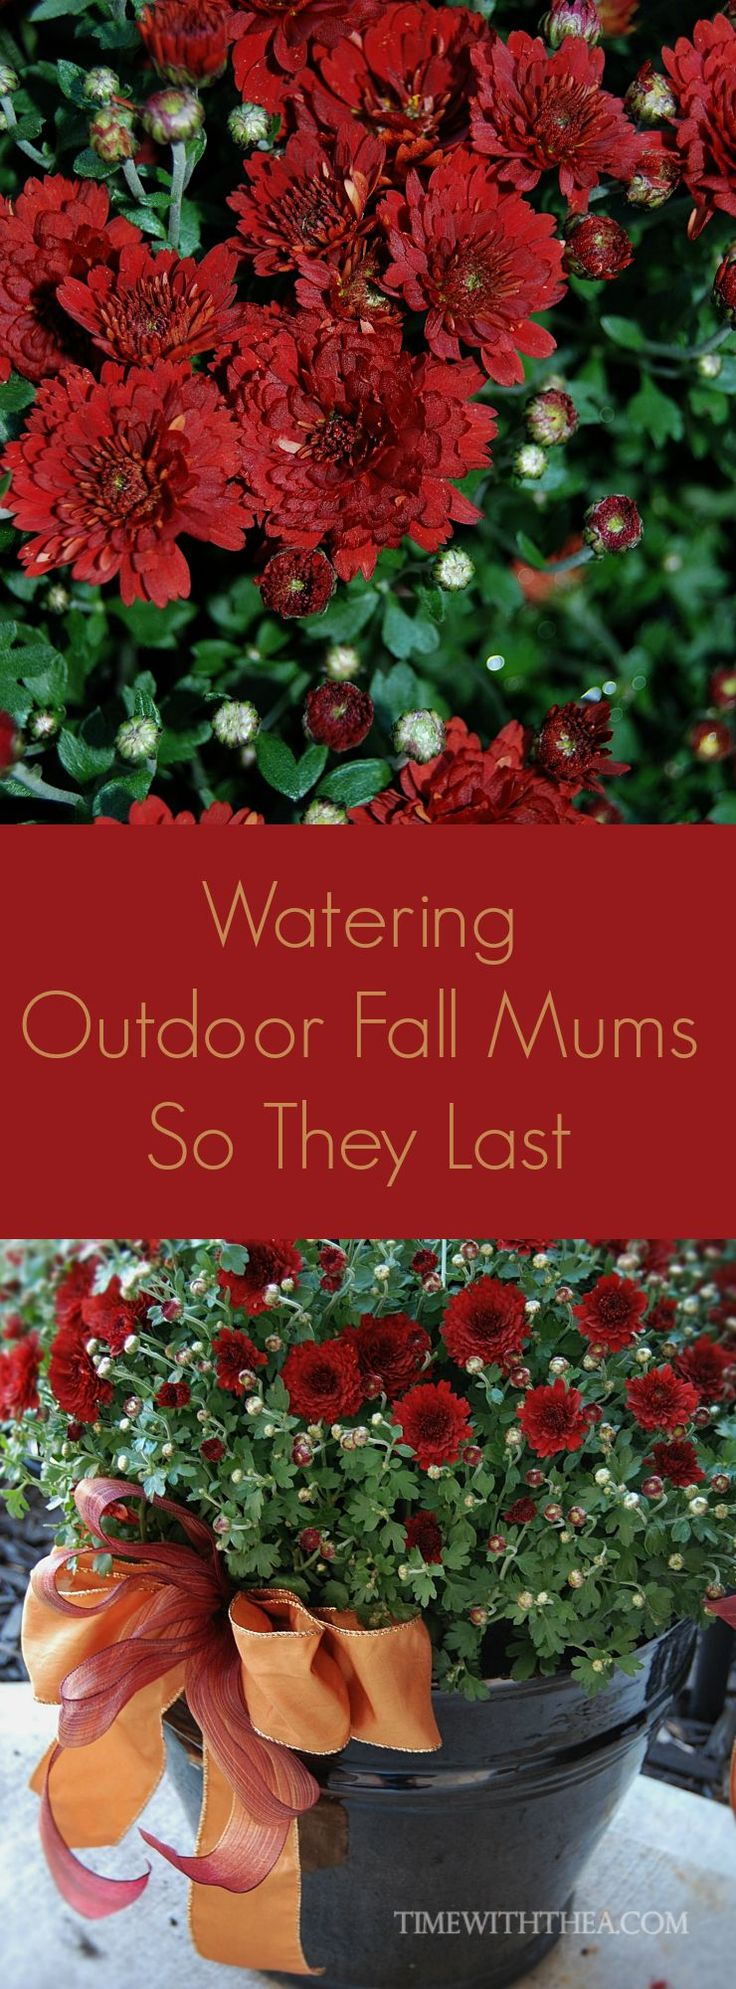 Watering Outdoor Fall Mums So They Last ~ It is easy keep your outdoor Fall Mums healthy and extend their blooming time with this clever watering tip!